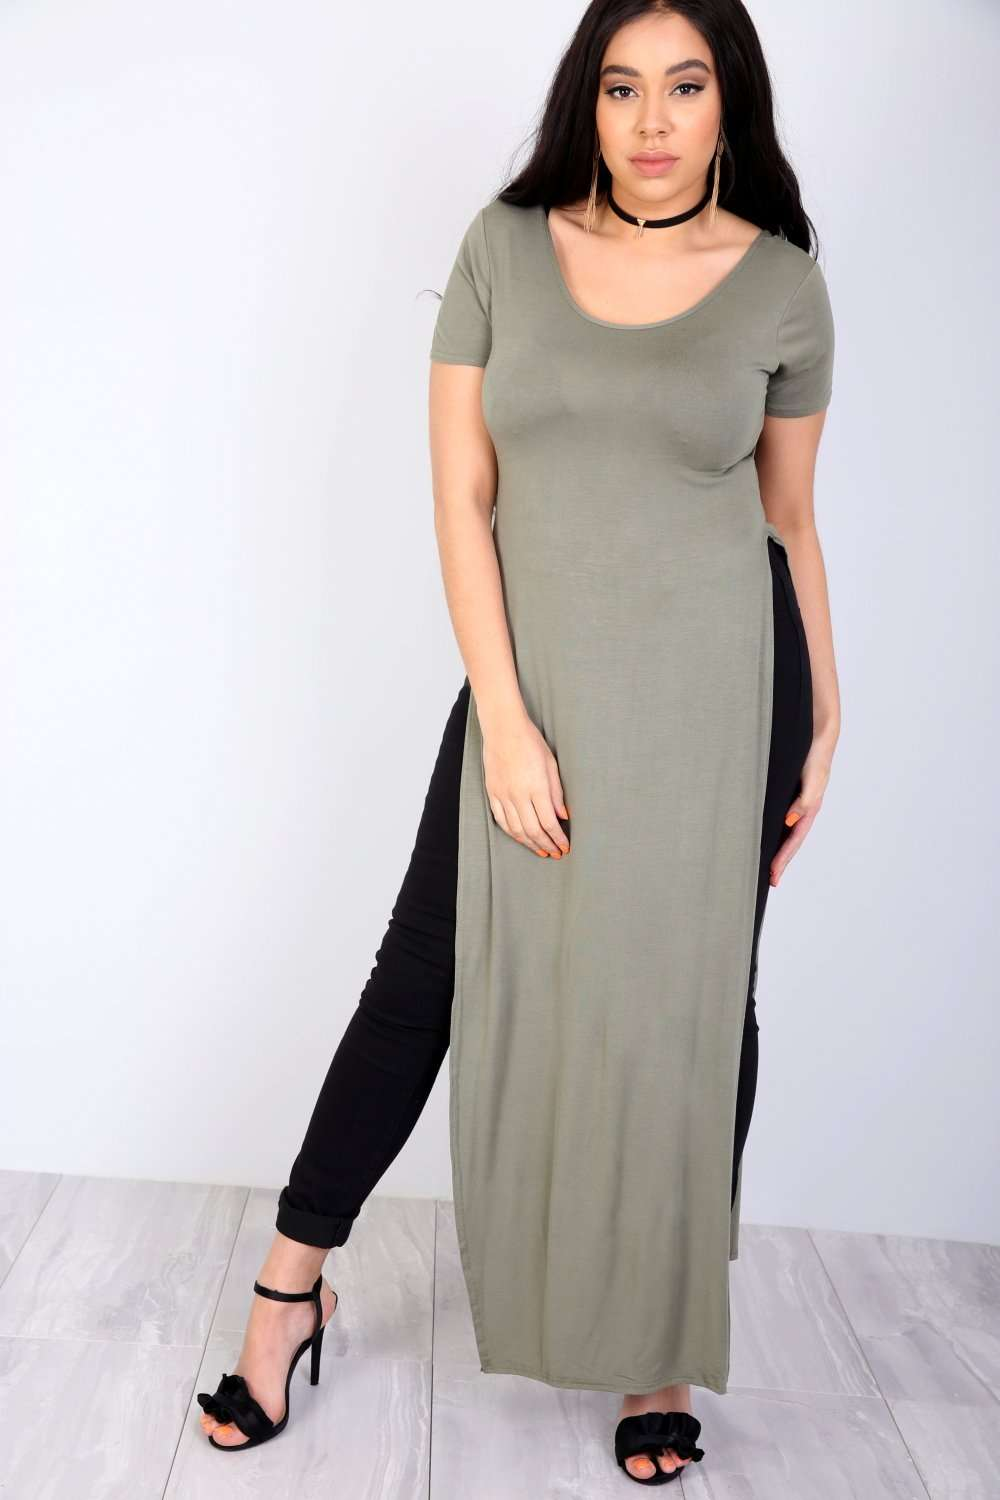 Lauren Plus Cap Sleeve Split Maxi Tshirt Dress - bejealous-com